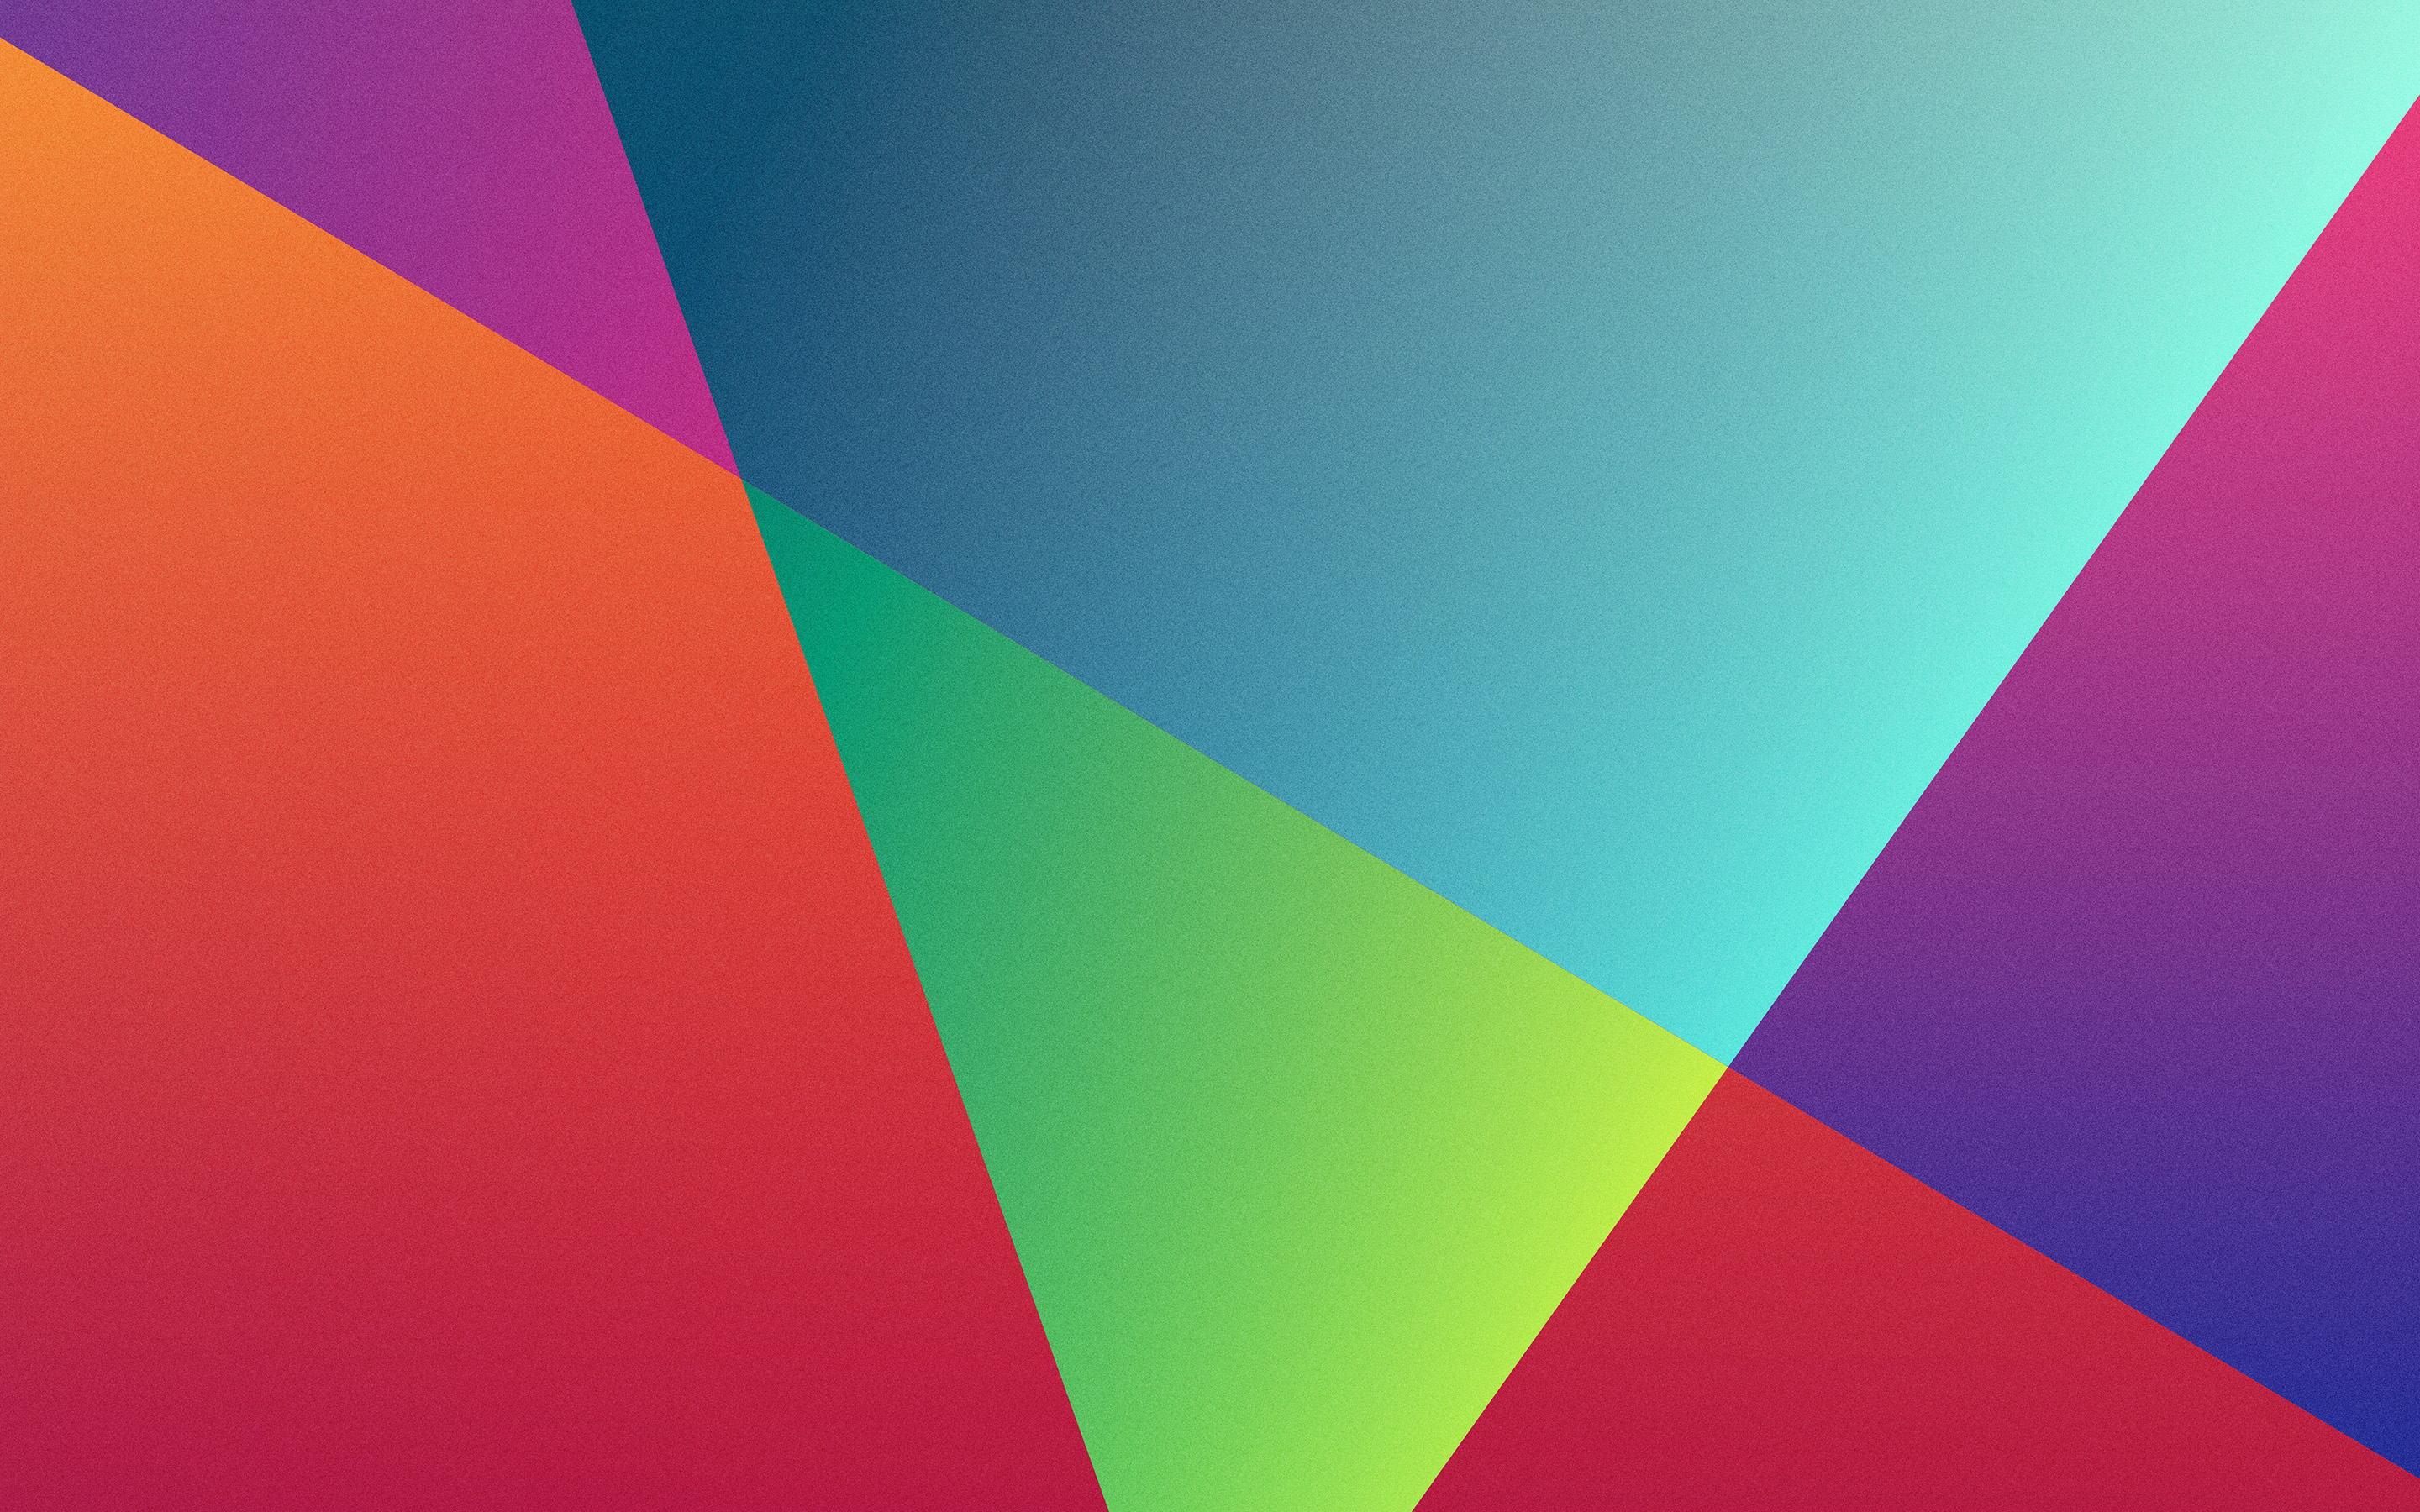 Gradient triangles wallpaper - 1099379